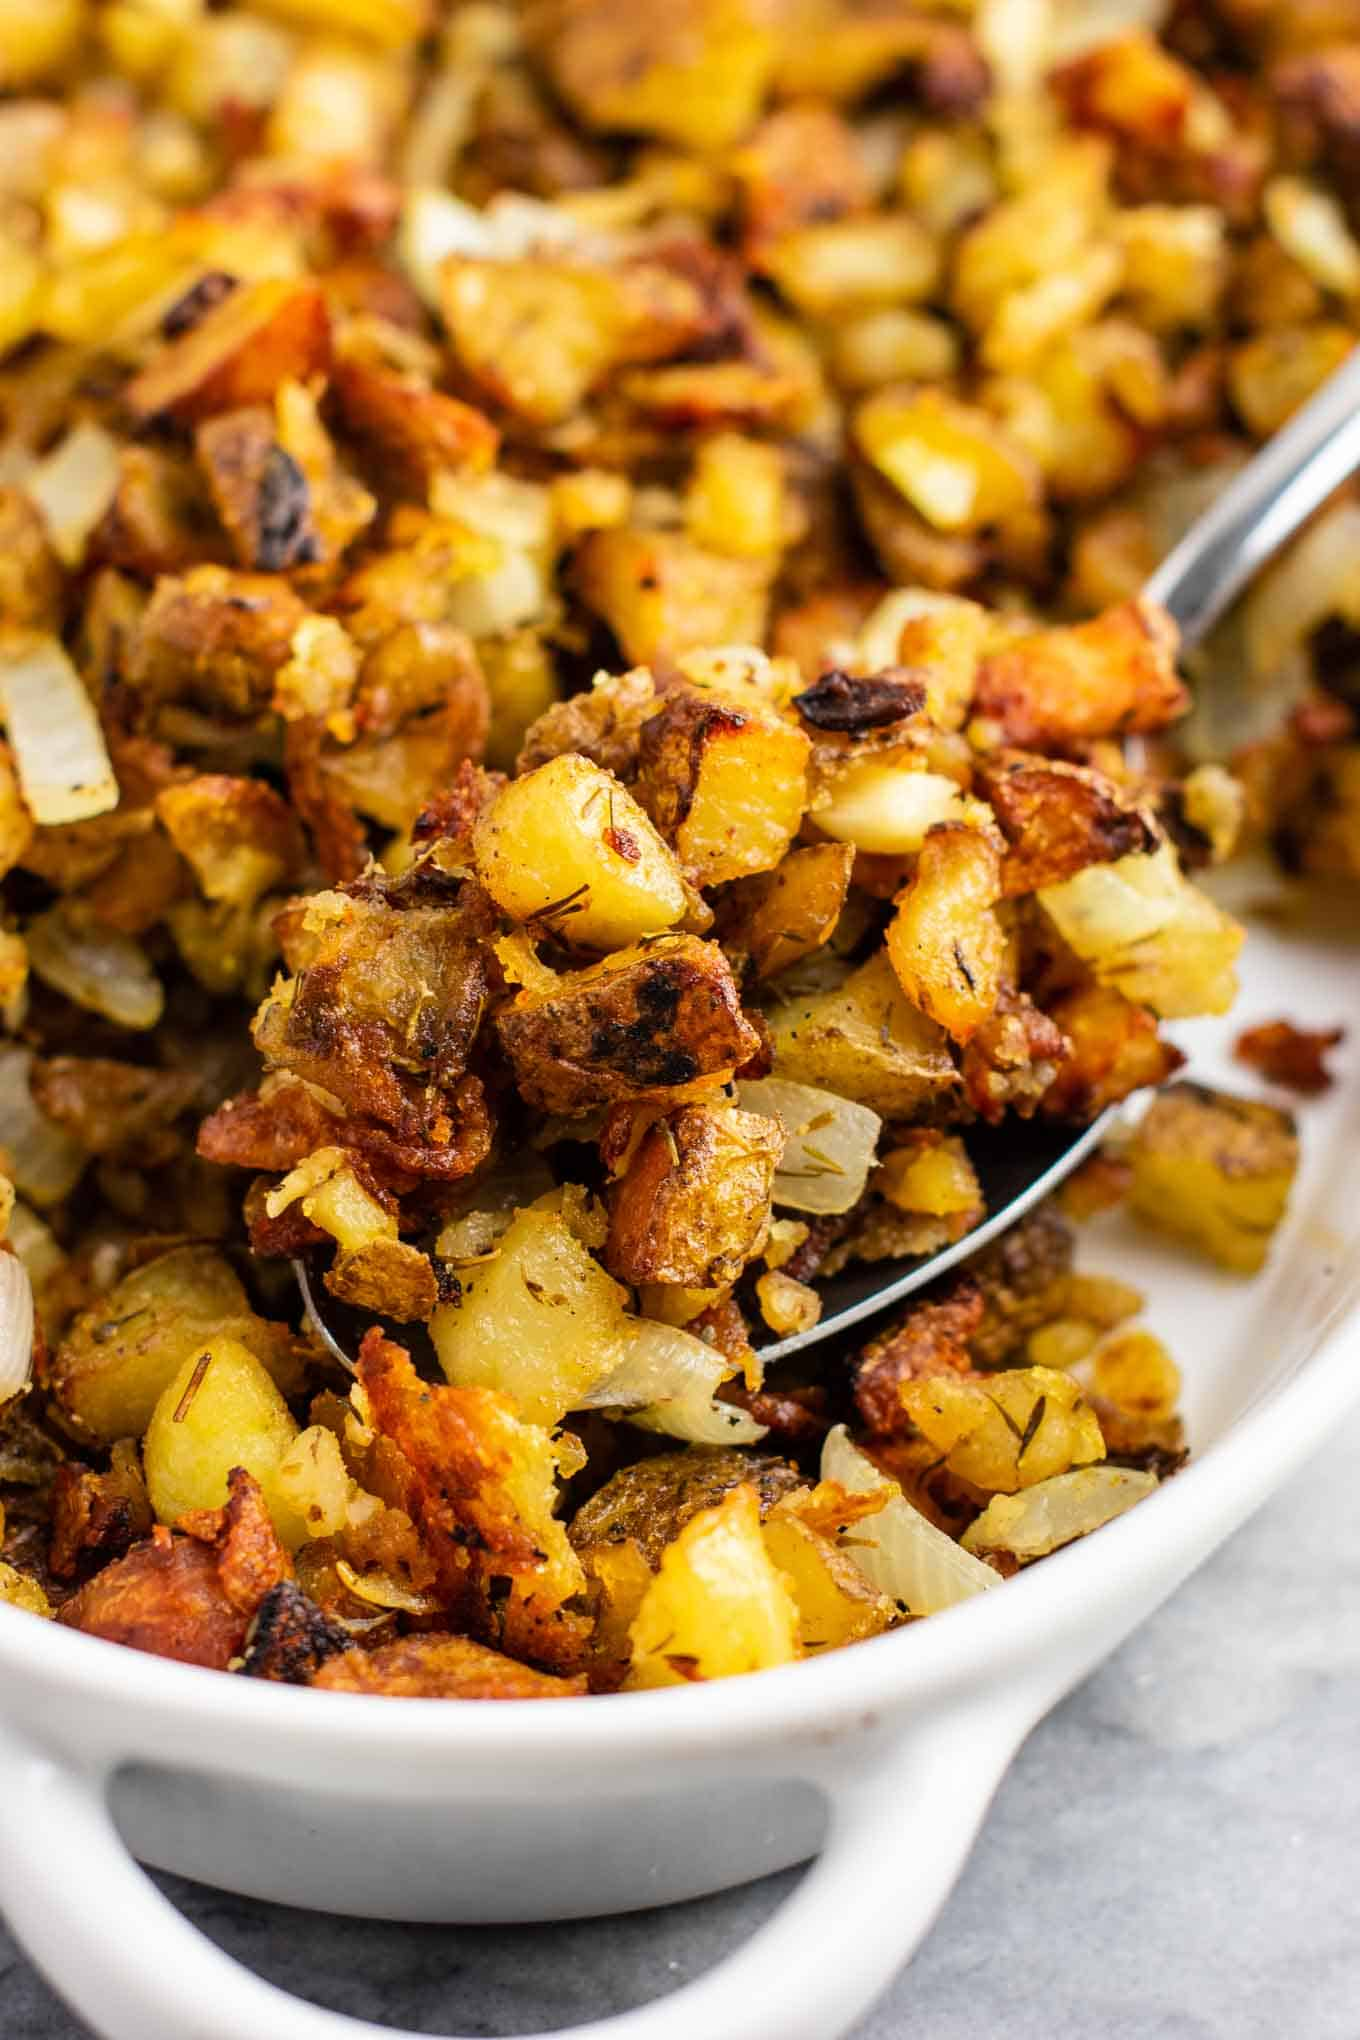 This famous crispy potato casserole is SO GOOD! Perfectly crispy potatoes slow roasted to perfection. One of the best vegan potato recipes! #potatocasserole #vegan #veganpotatorecipes #dinner #potatoes #healthy